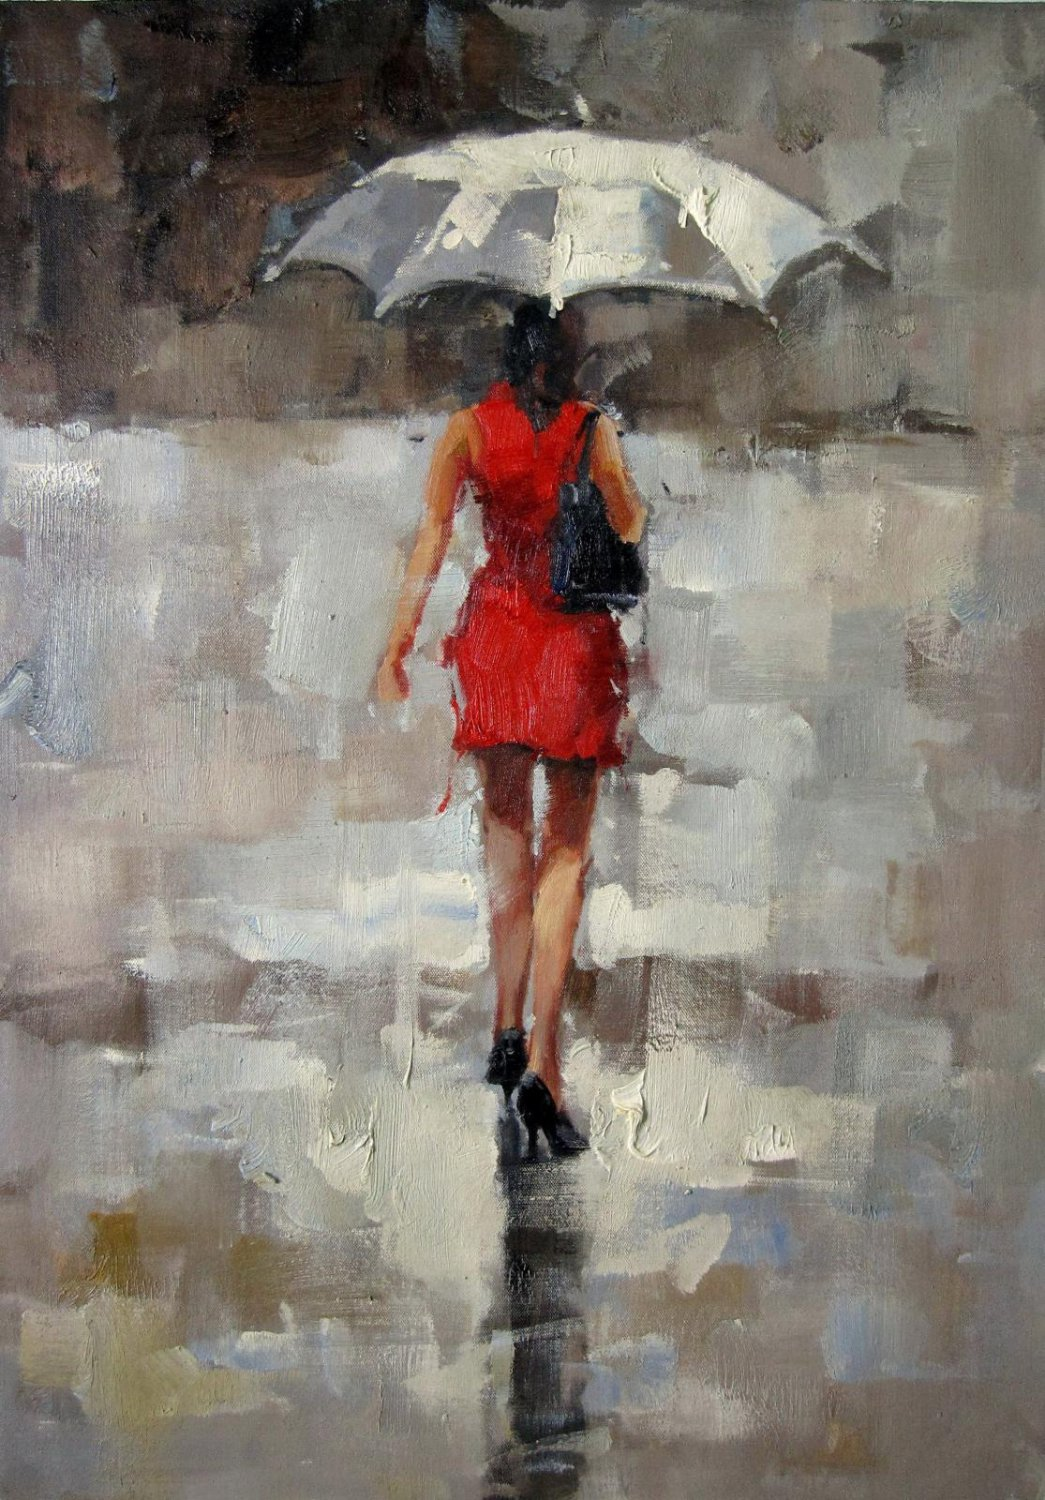 In the rain 24x36 in. stretched Oil Painting Canvas Art Wall Decor modern030